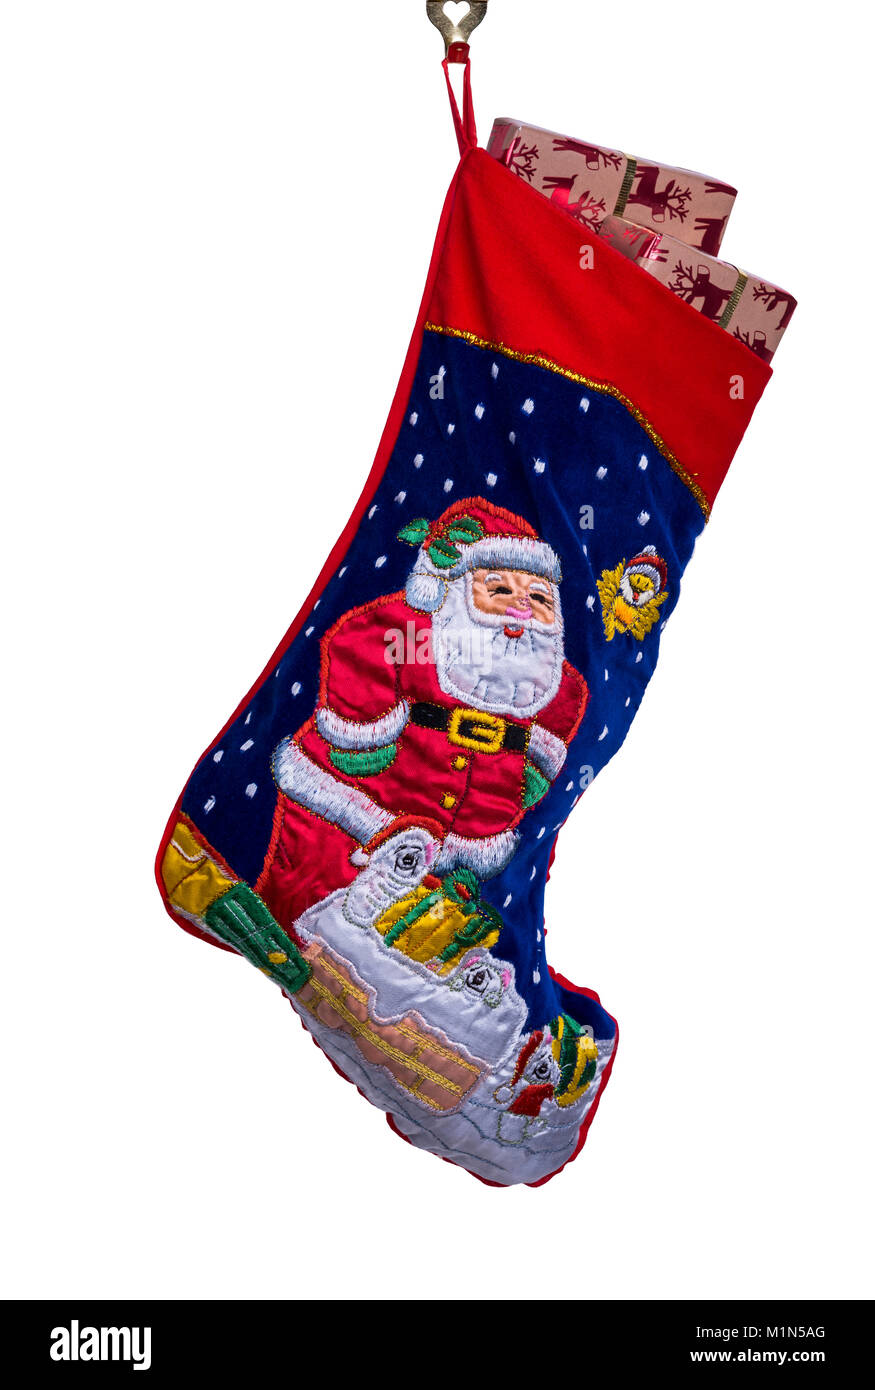 Traditional Christmas or Xmas stocking, filled with gift wrapped presents or gifts. - Stock Image